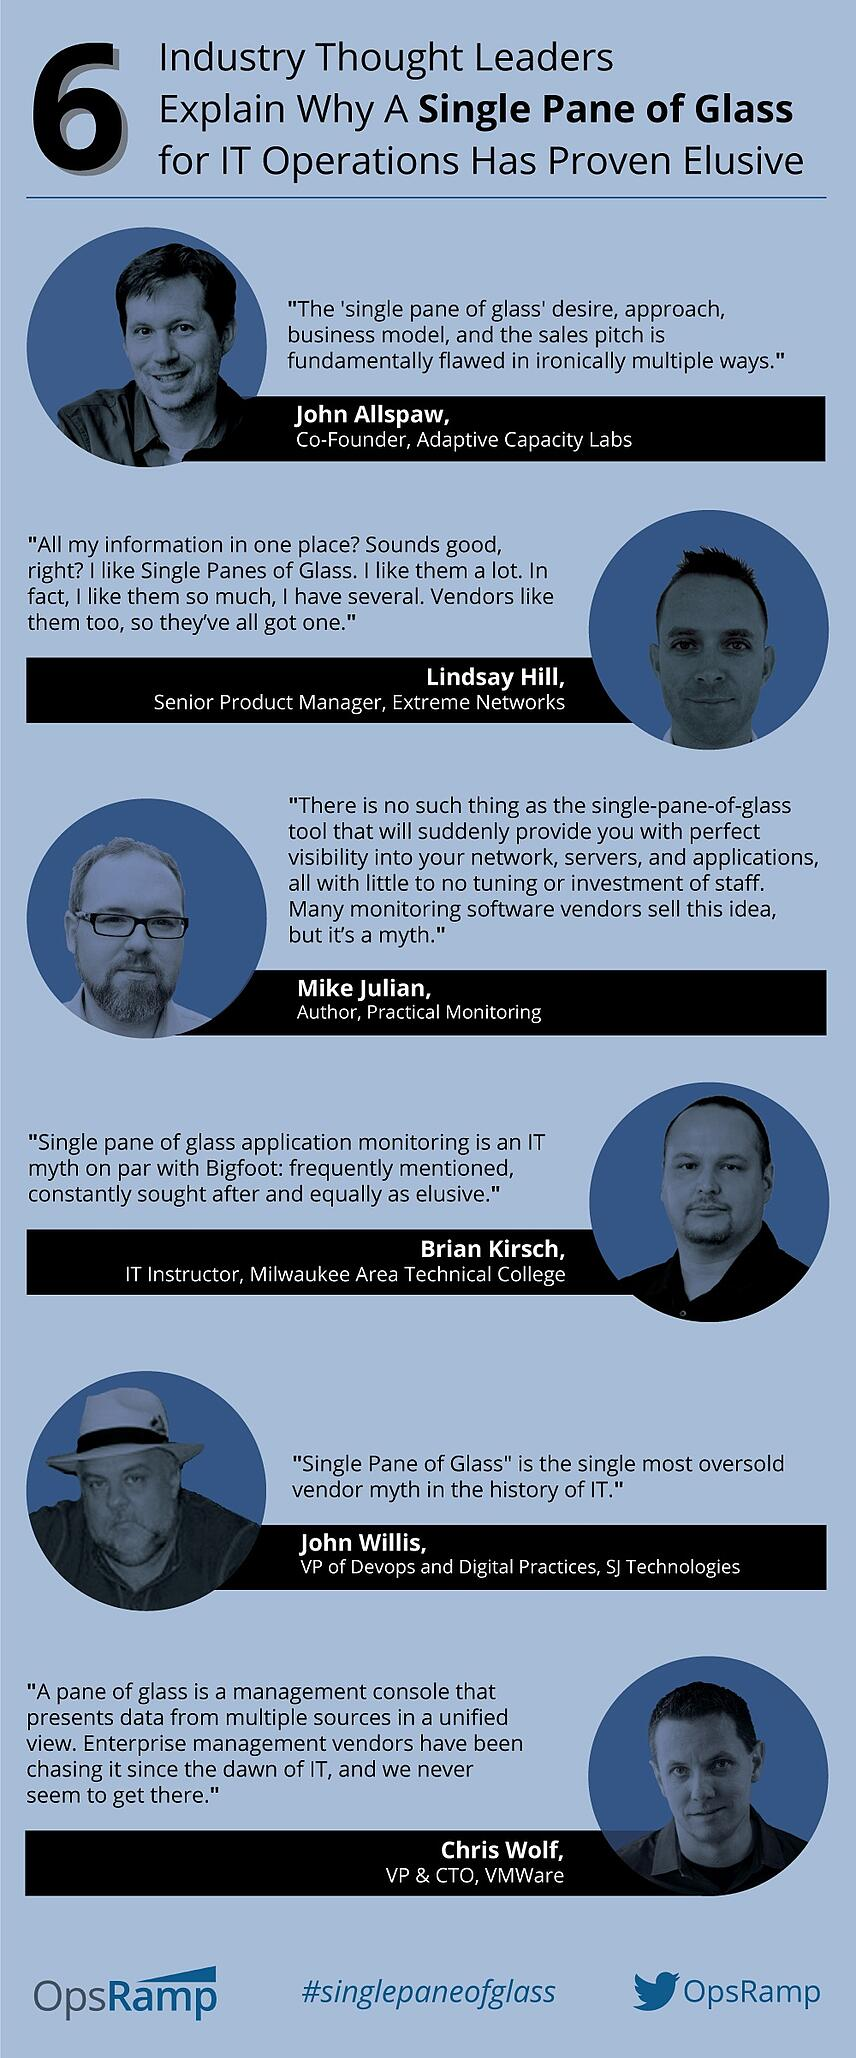 Industry Thought Leaders On 'Single Pane of Glass'